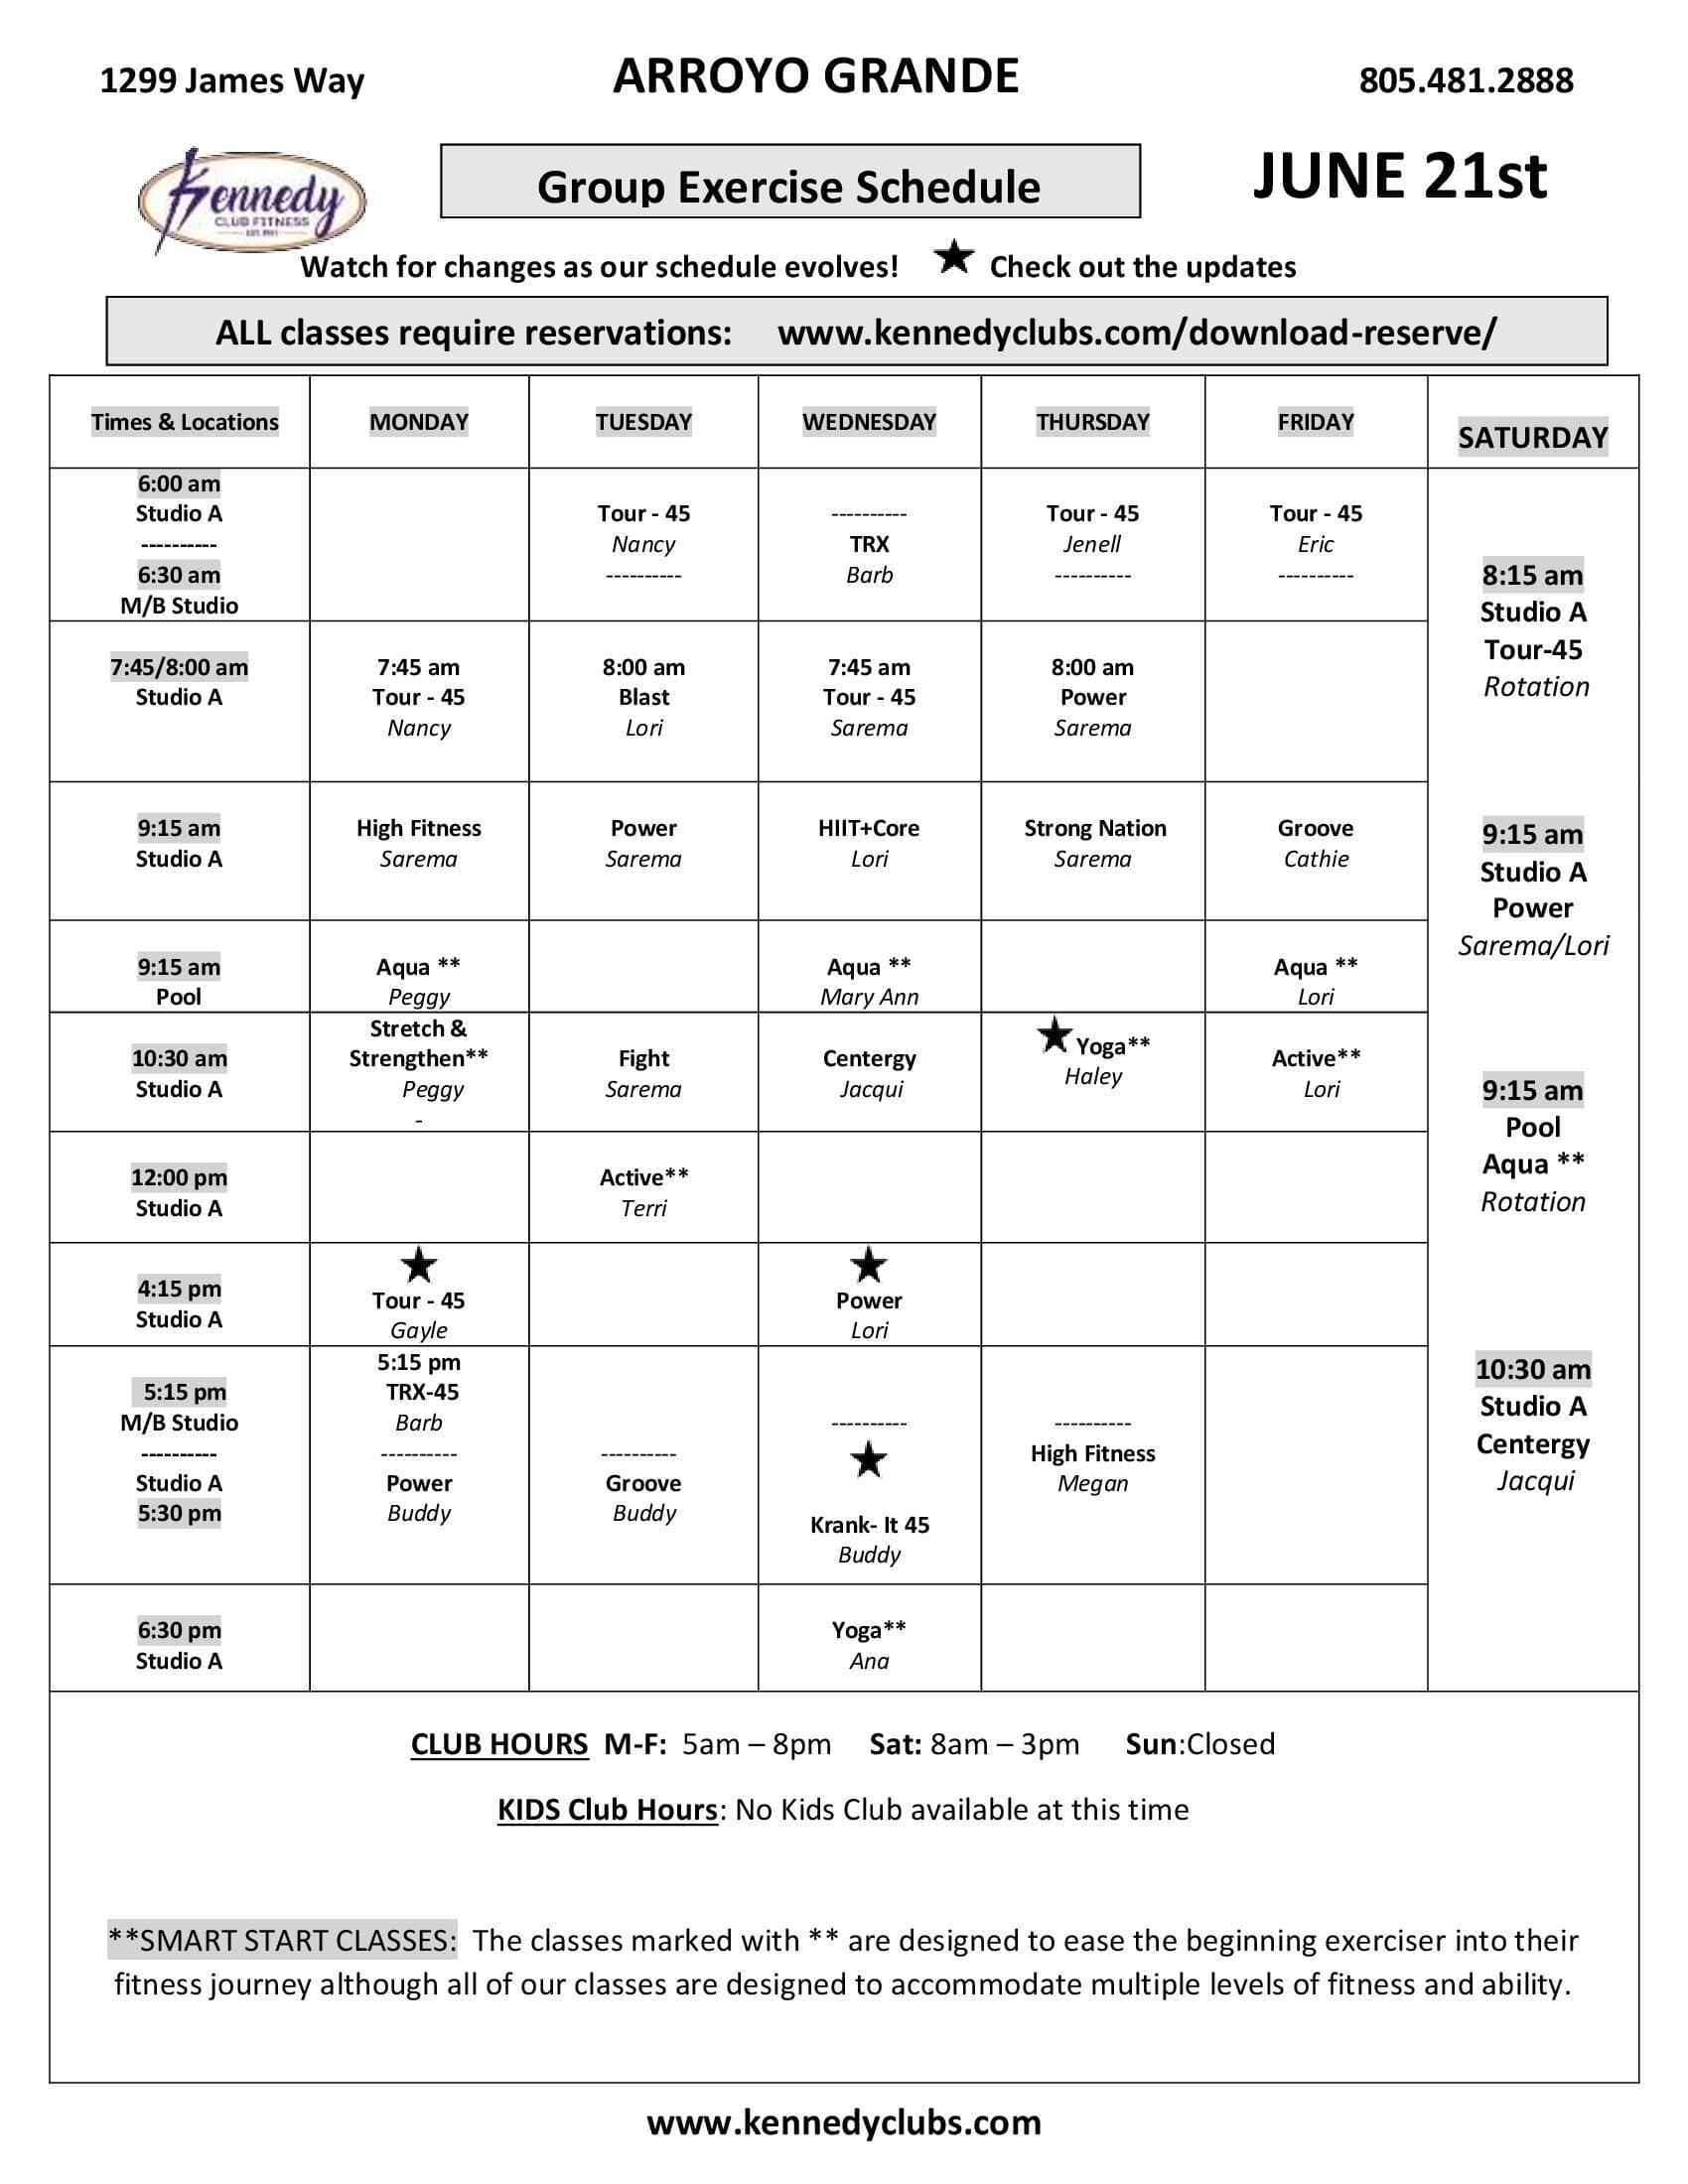 Kennedy Club Fitness Arroyo Grande Group Exercise Schedule 06 22 2021